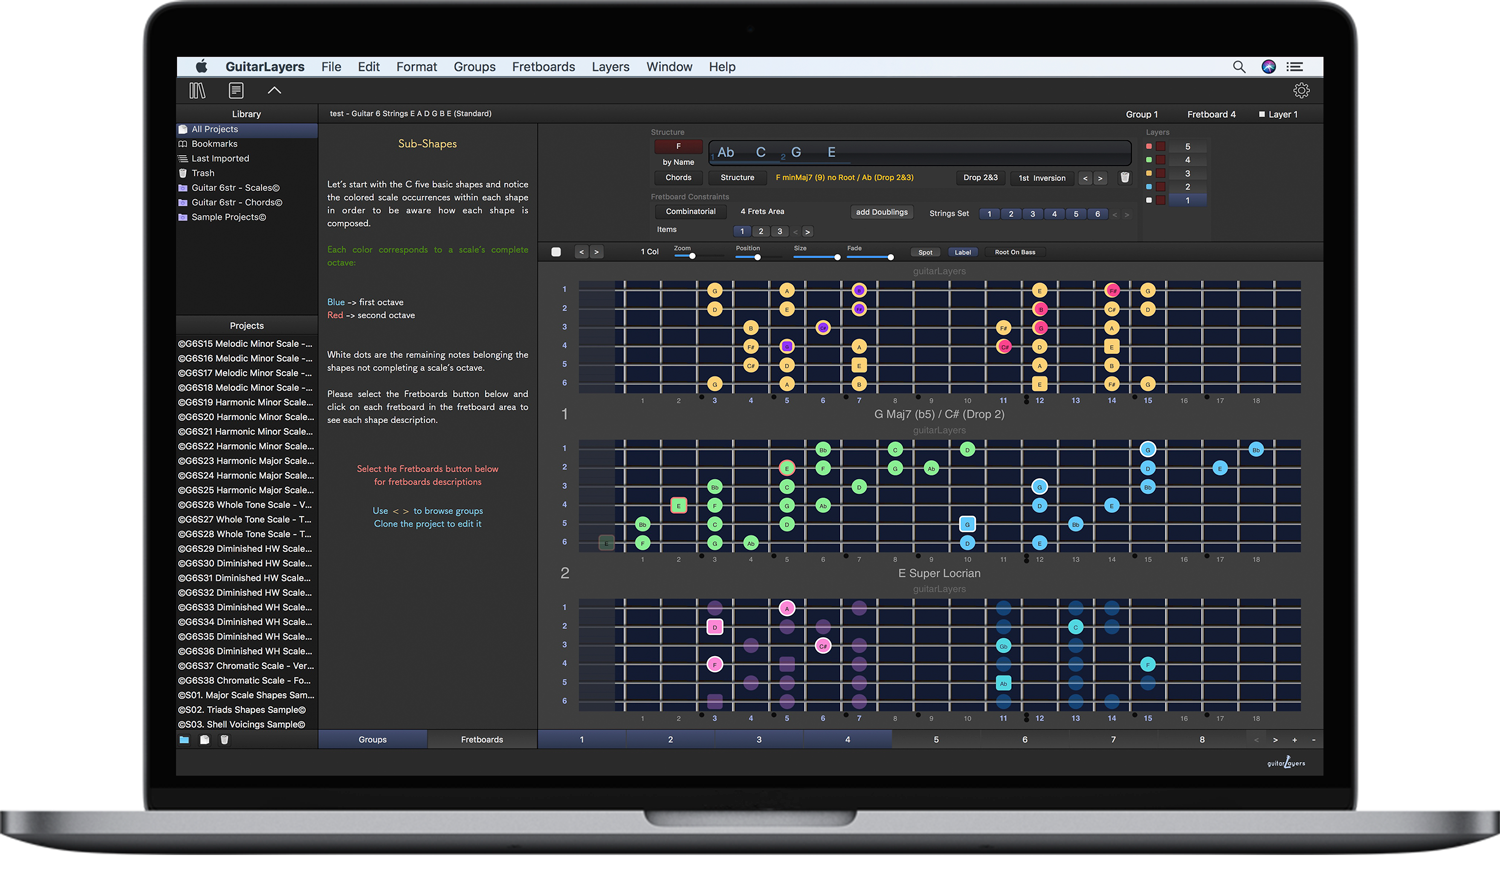 guitarLayers - guitar learning software for scales, chords and arpeggios